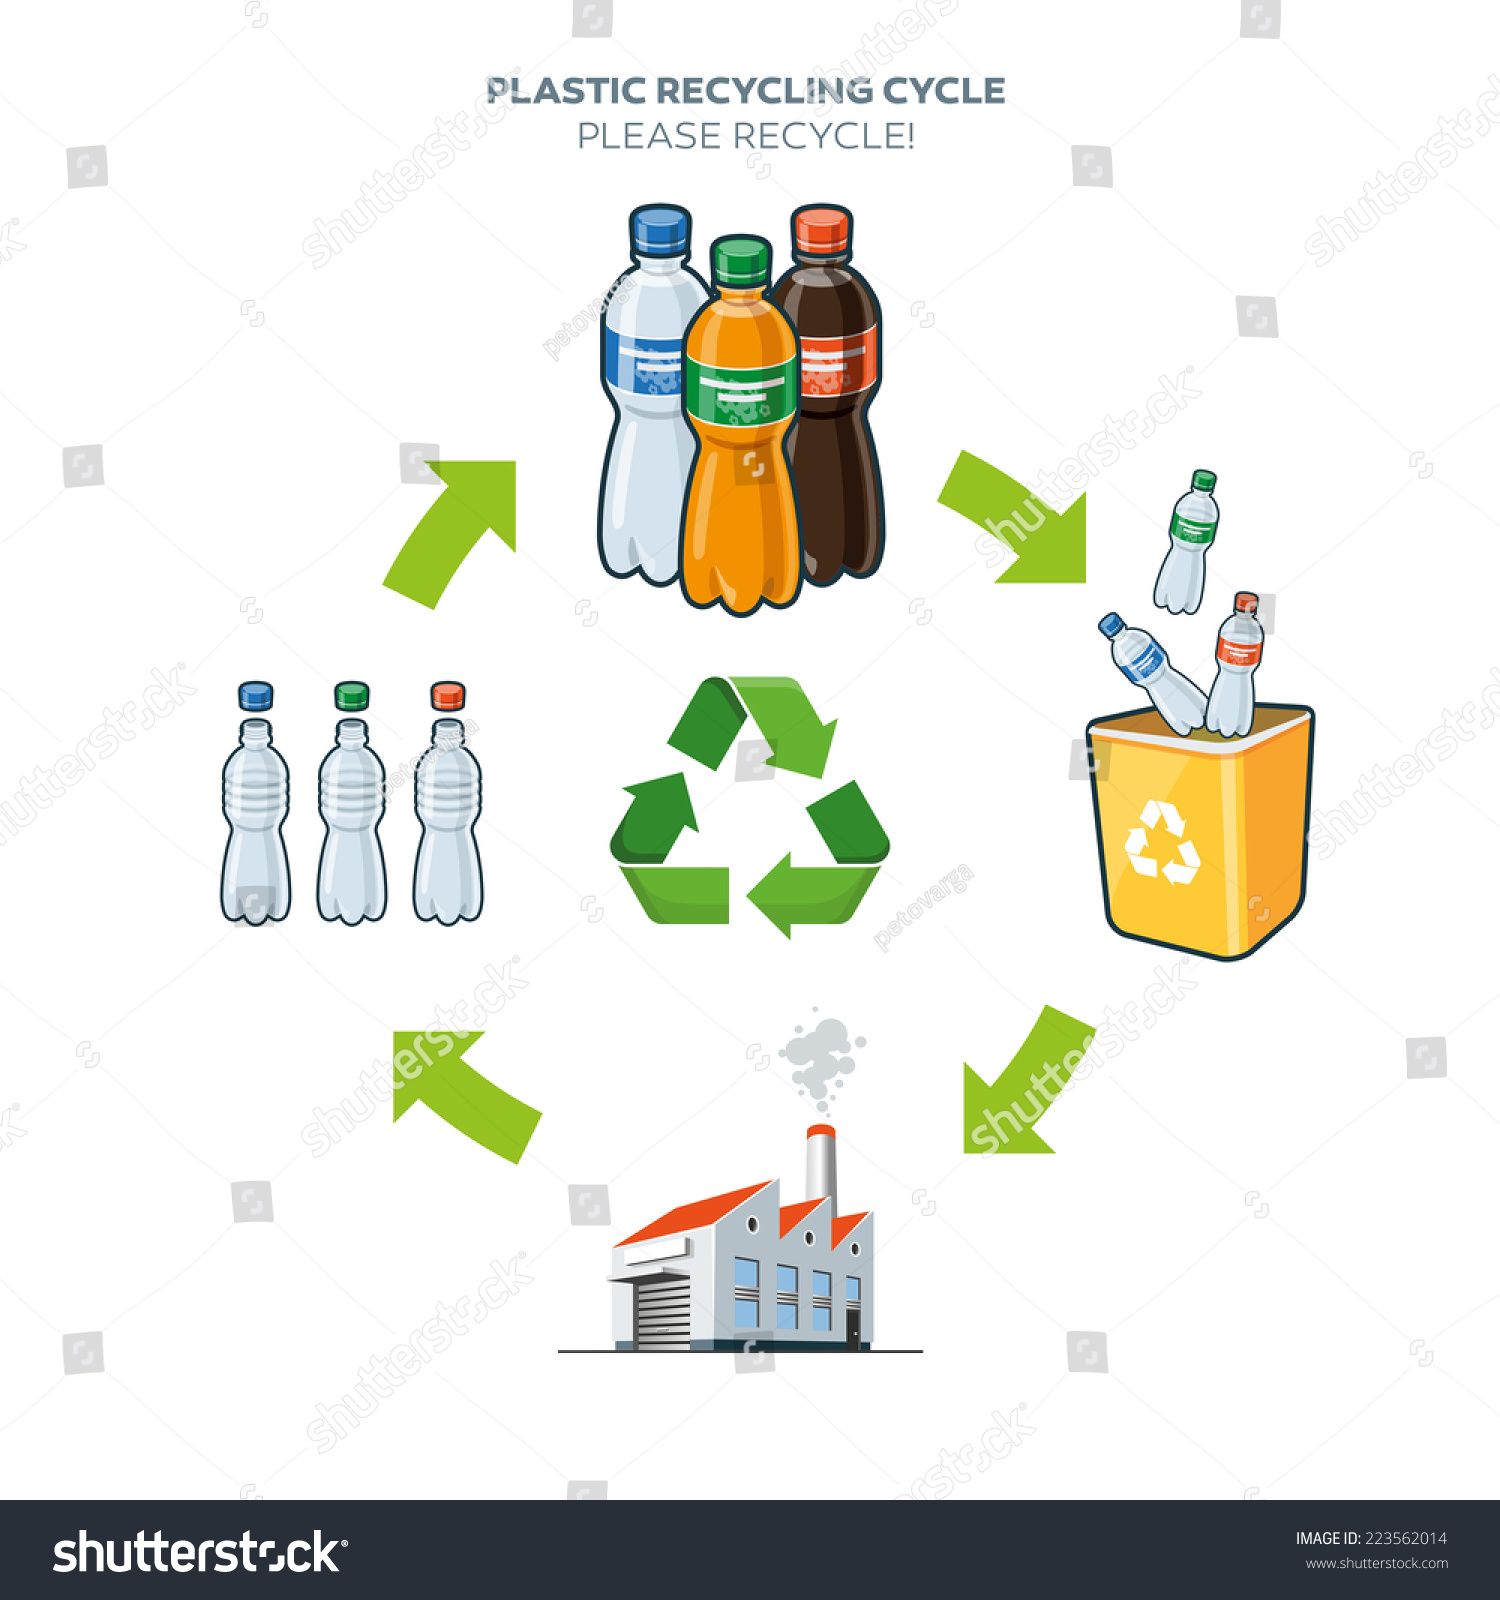 marketing essay plastic bottle recycling